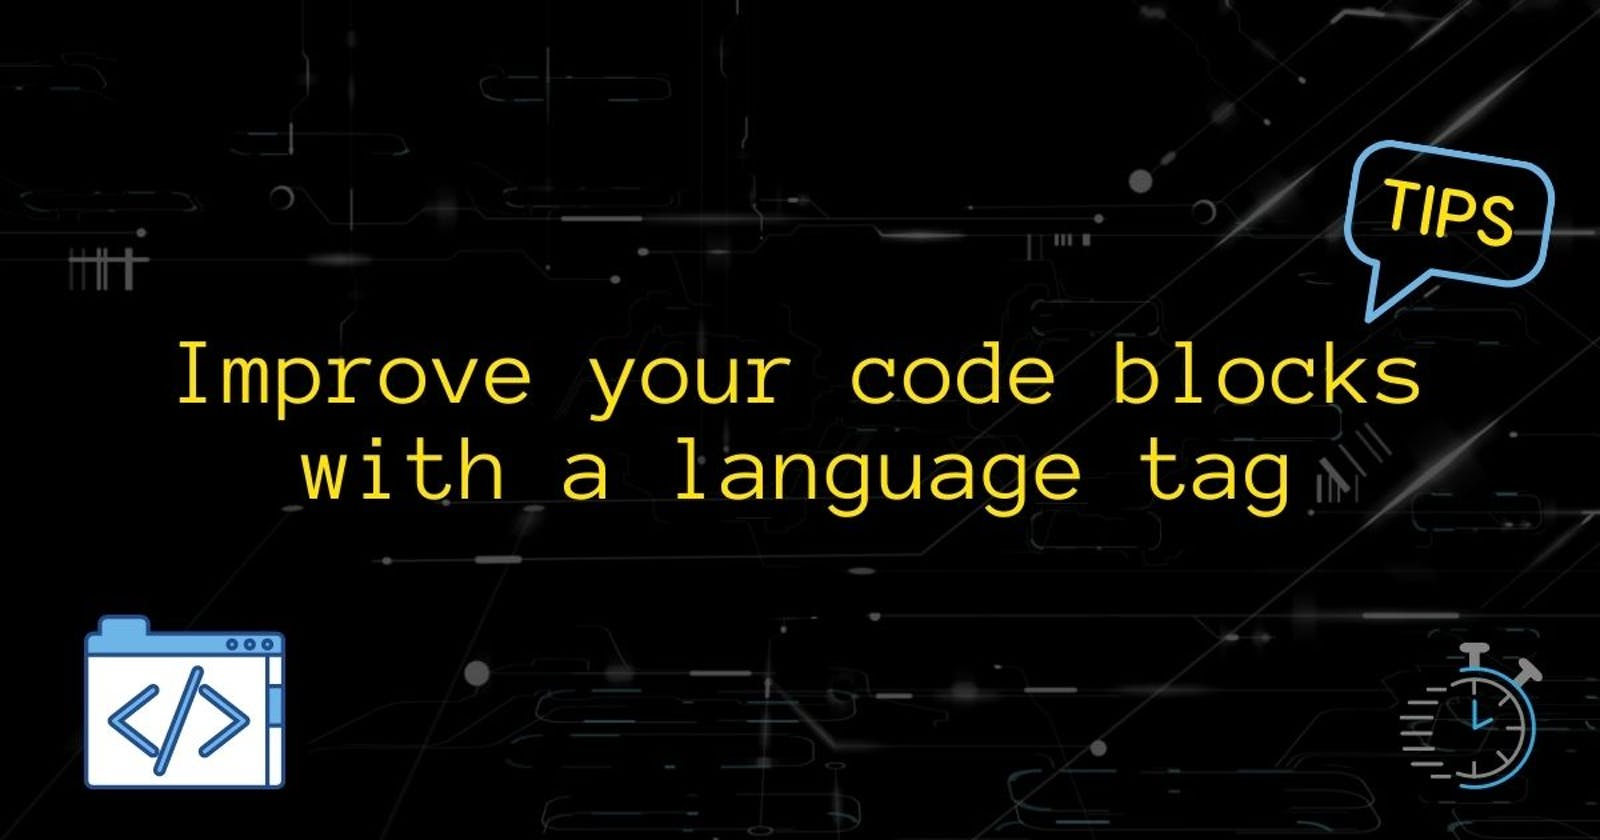 Quick tip: Improve your code blocks with a language tag